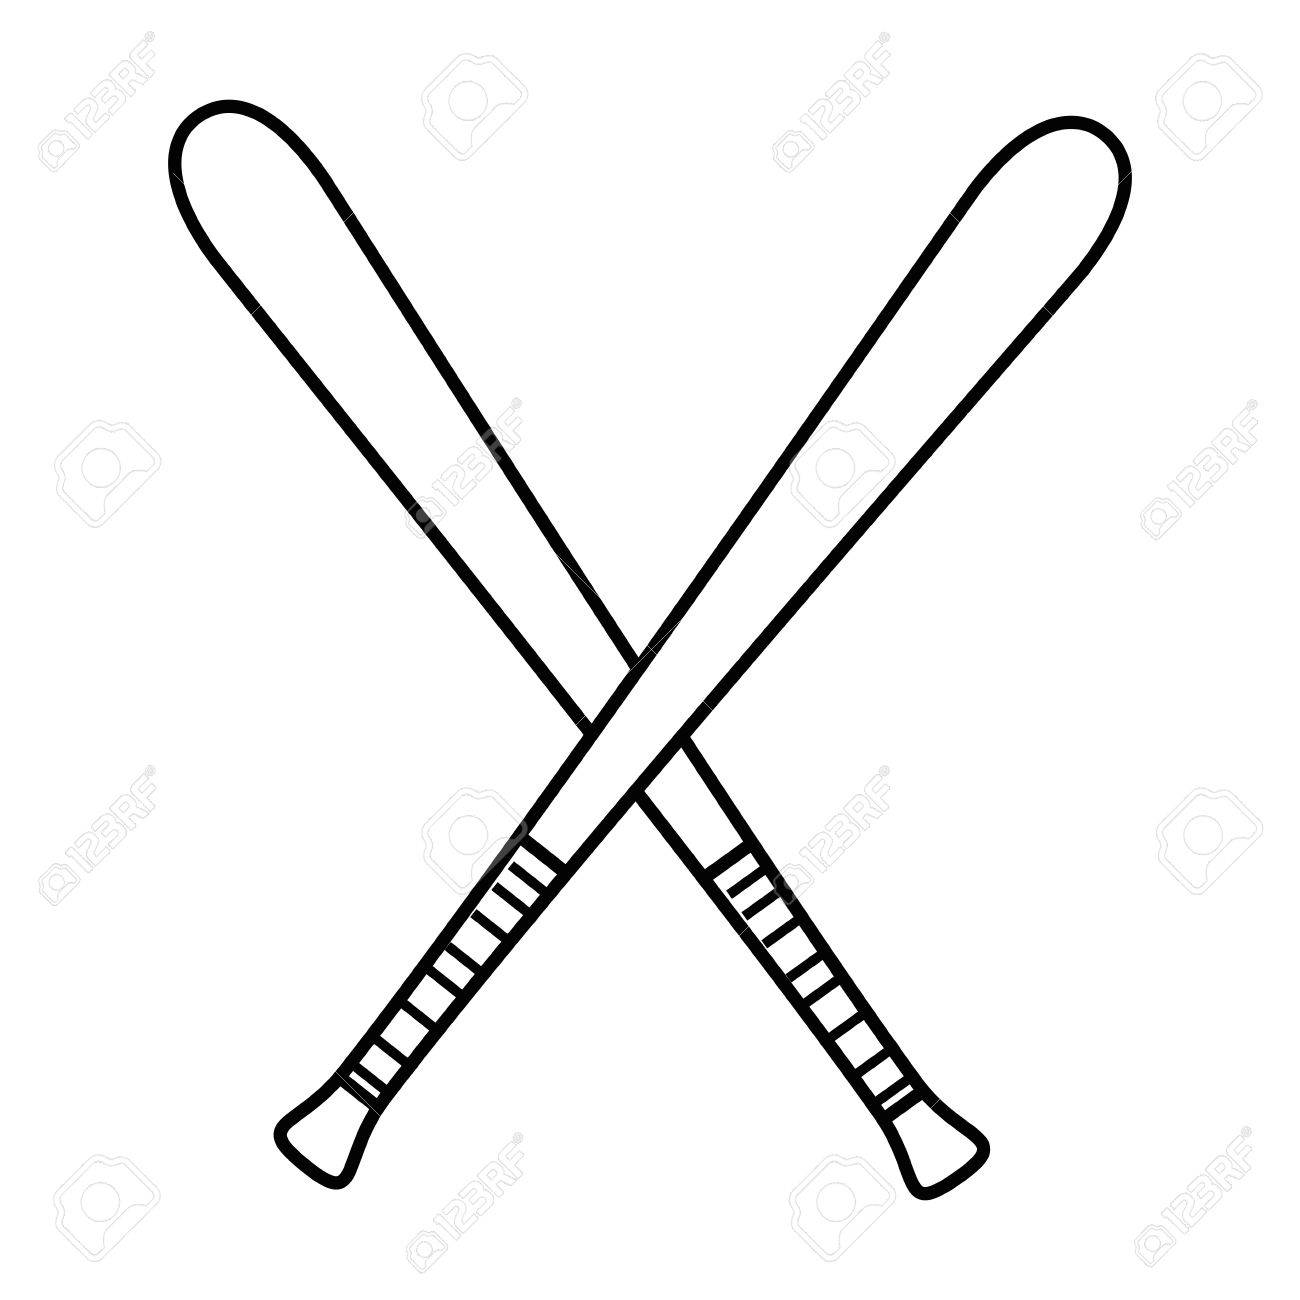 baseball bats crossed icon over white background vector illustration rh 123rf com crossed softball bats clipart crossed baseball bats clipart black and white